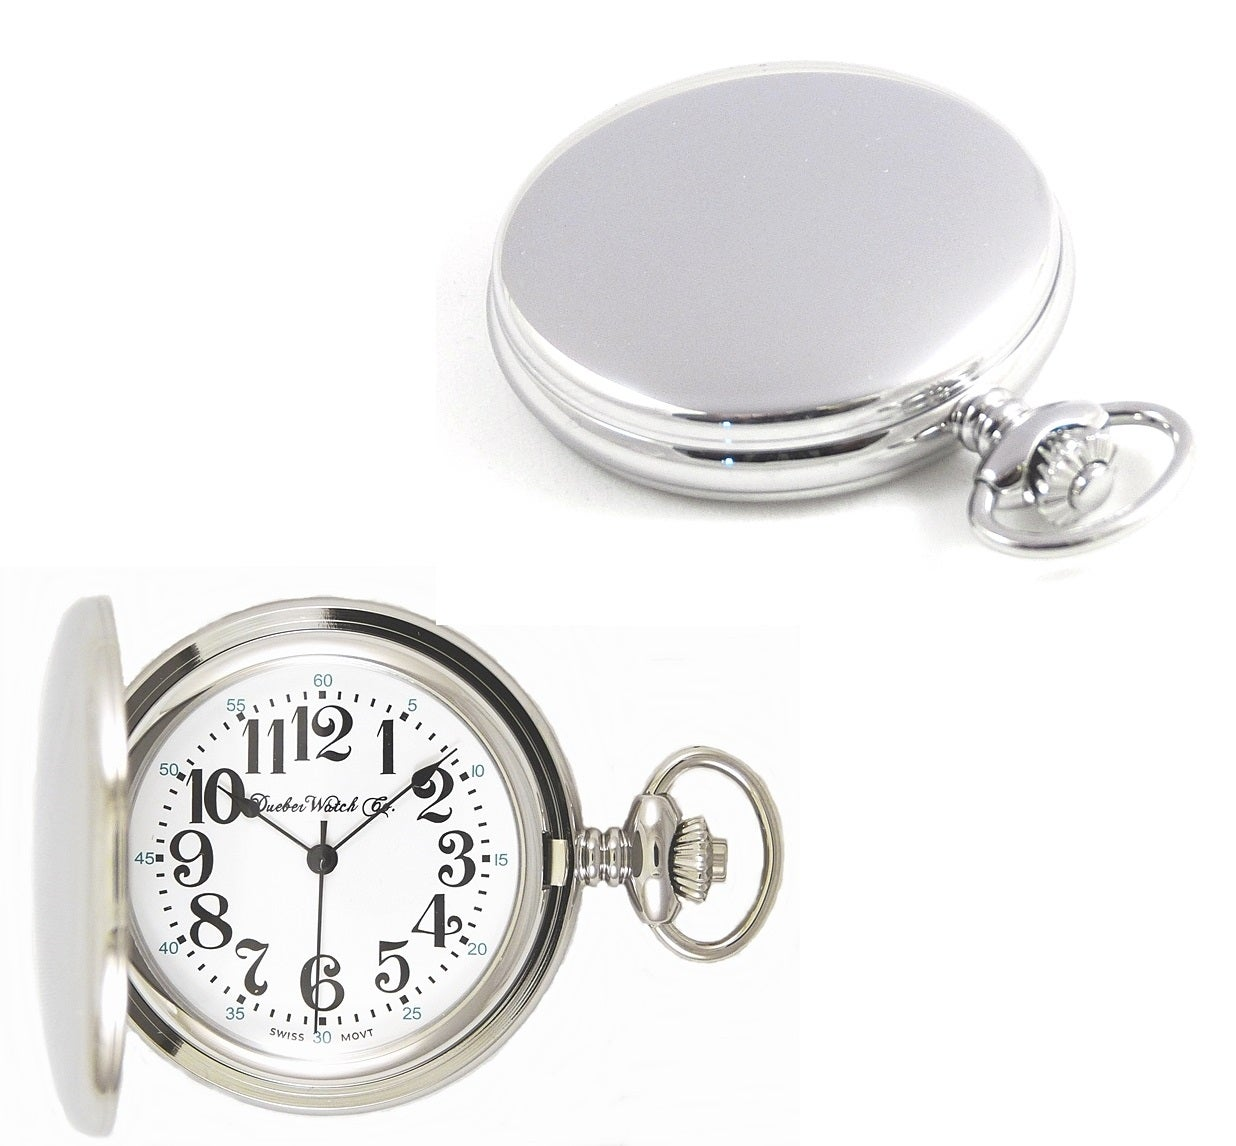 Image of Dueber Pocket Watch, Swiss Made Quartz Movement, Chrome Plated Steel Hunting Case 312-310